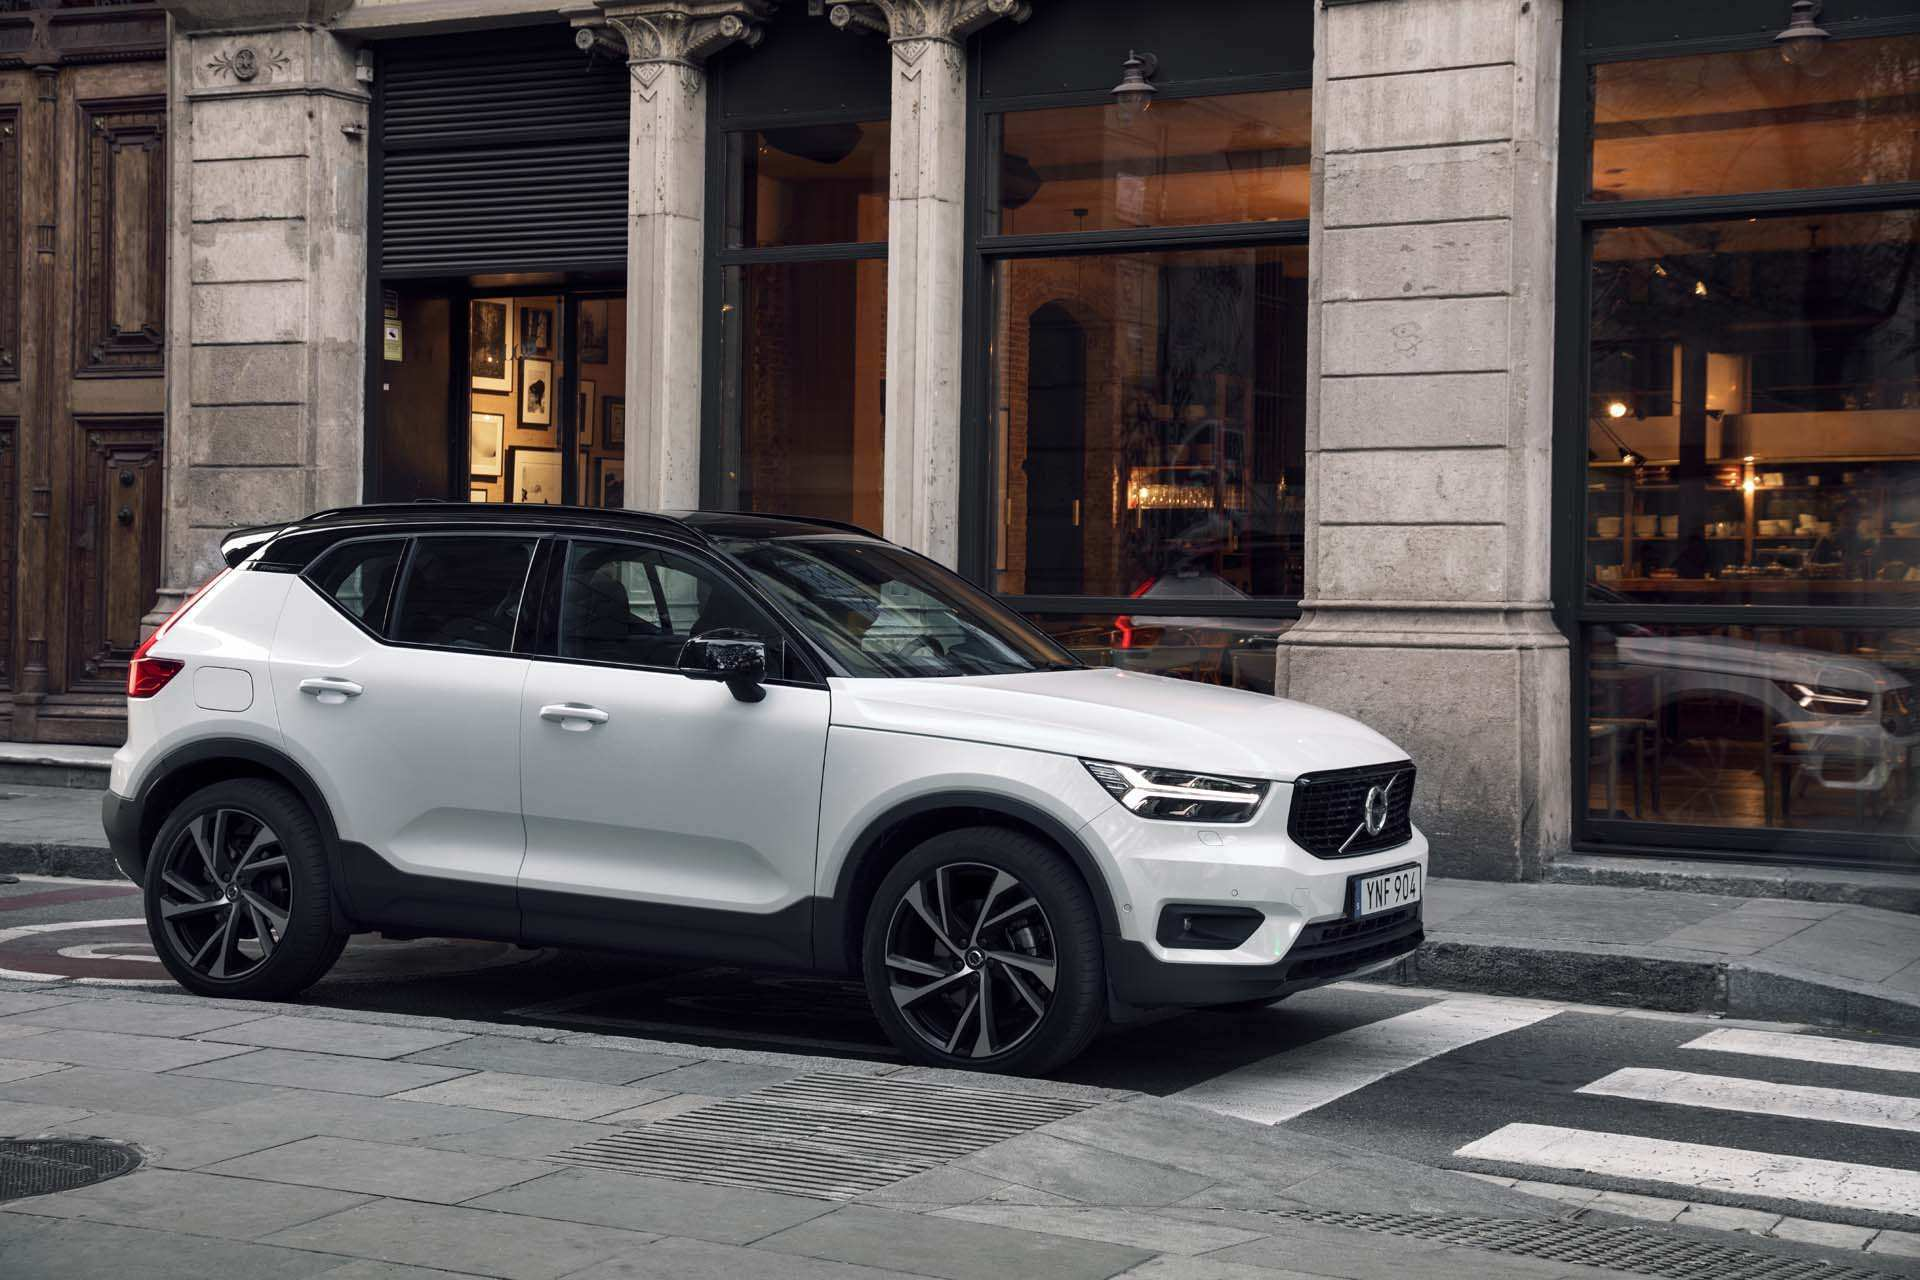 89 New The Volvo Suv 2019 First Drive Wallpaper with The Volvo Suv 2019 First Drive